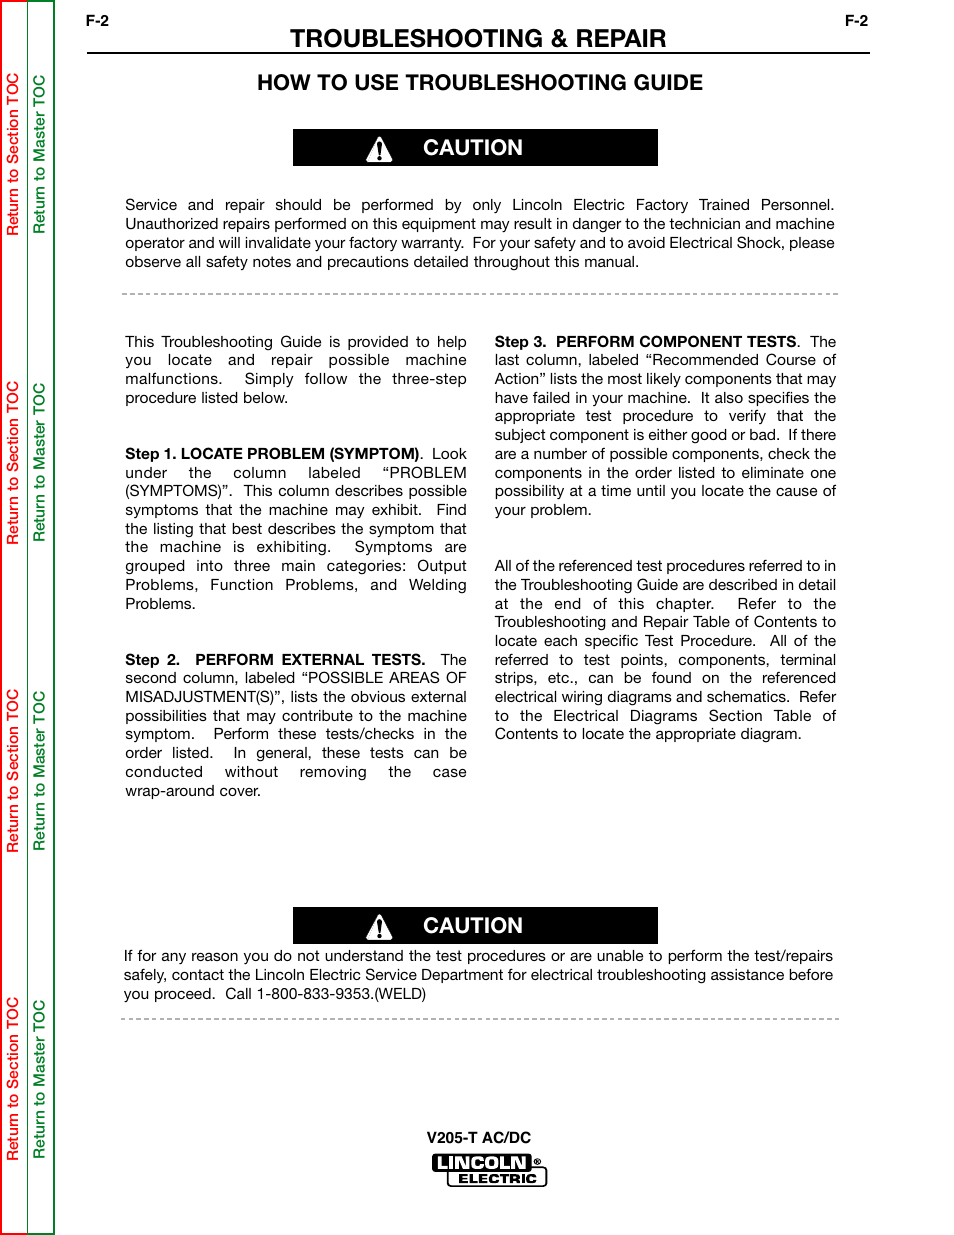 Troubleshooting Repair How To Use Guide Caution Lincoln Electric Welder Wiring Diagram Invertec V205 T User Manual Page 38 109